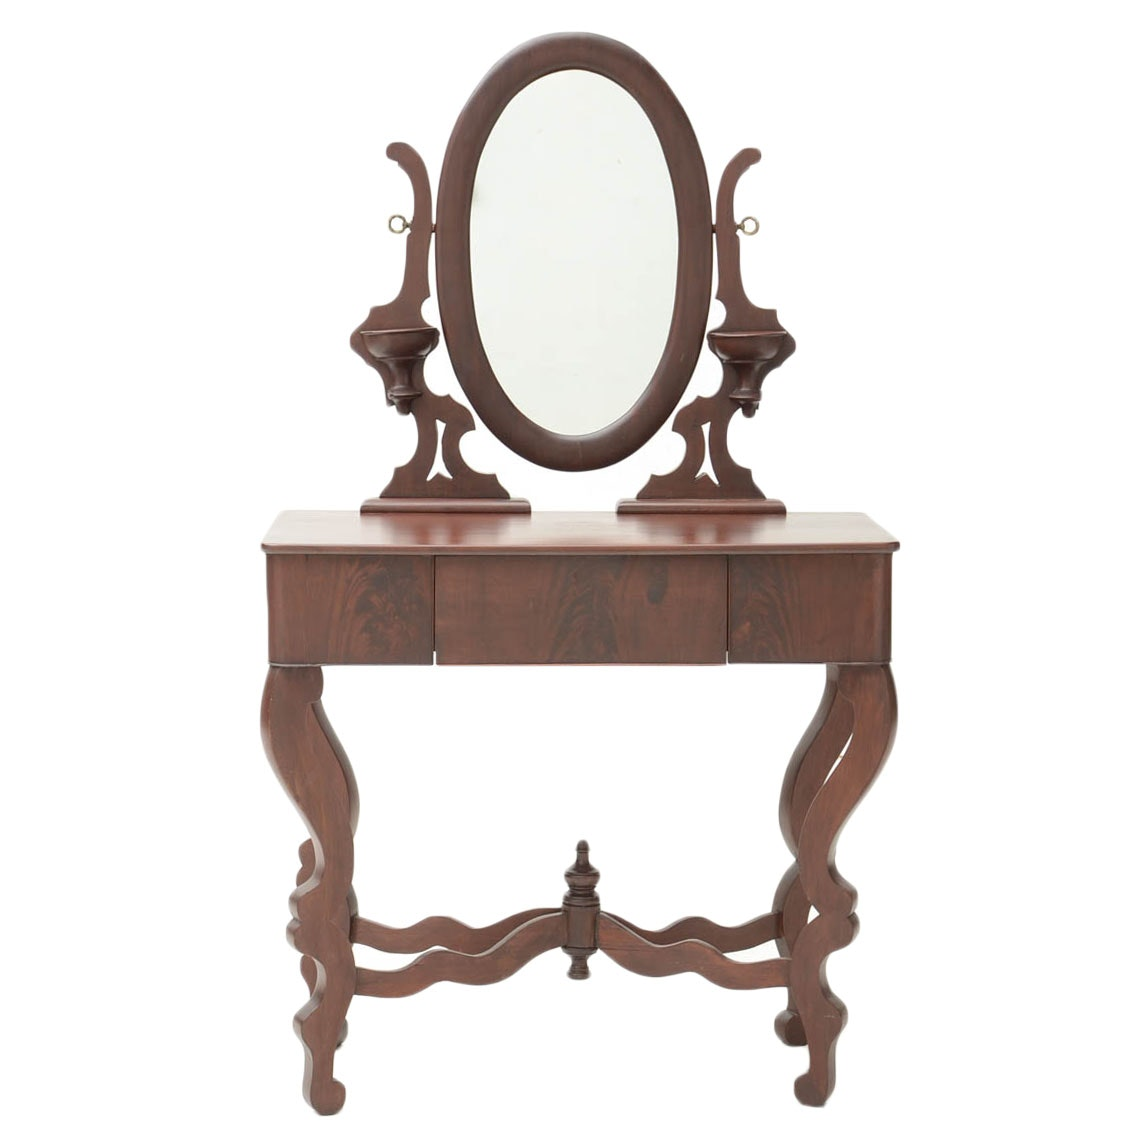 Late Classical Dressing Table with Mirror